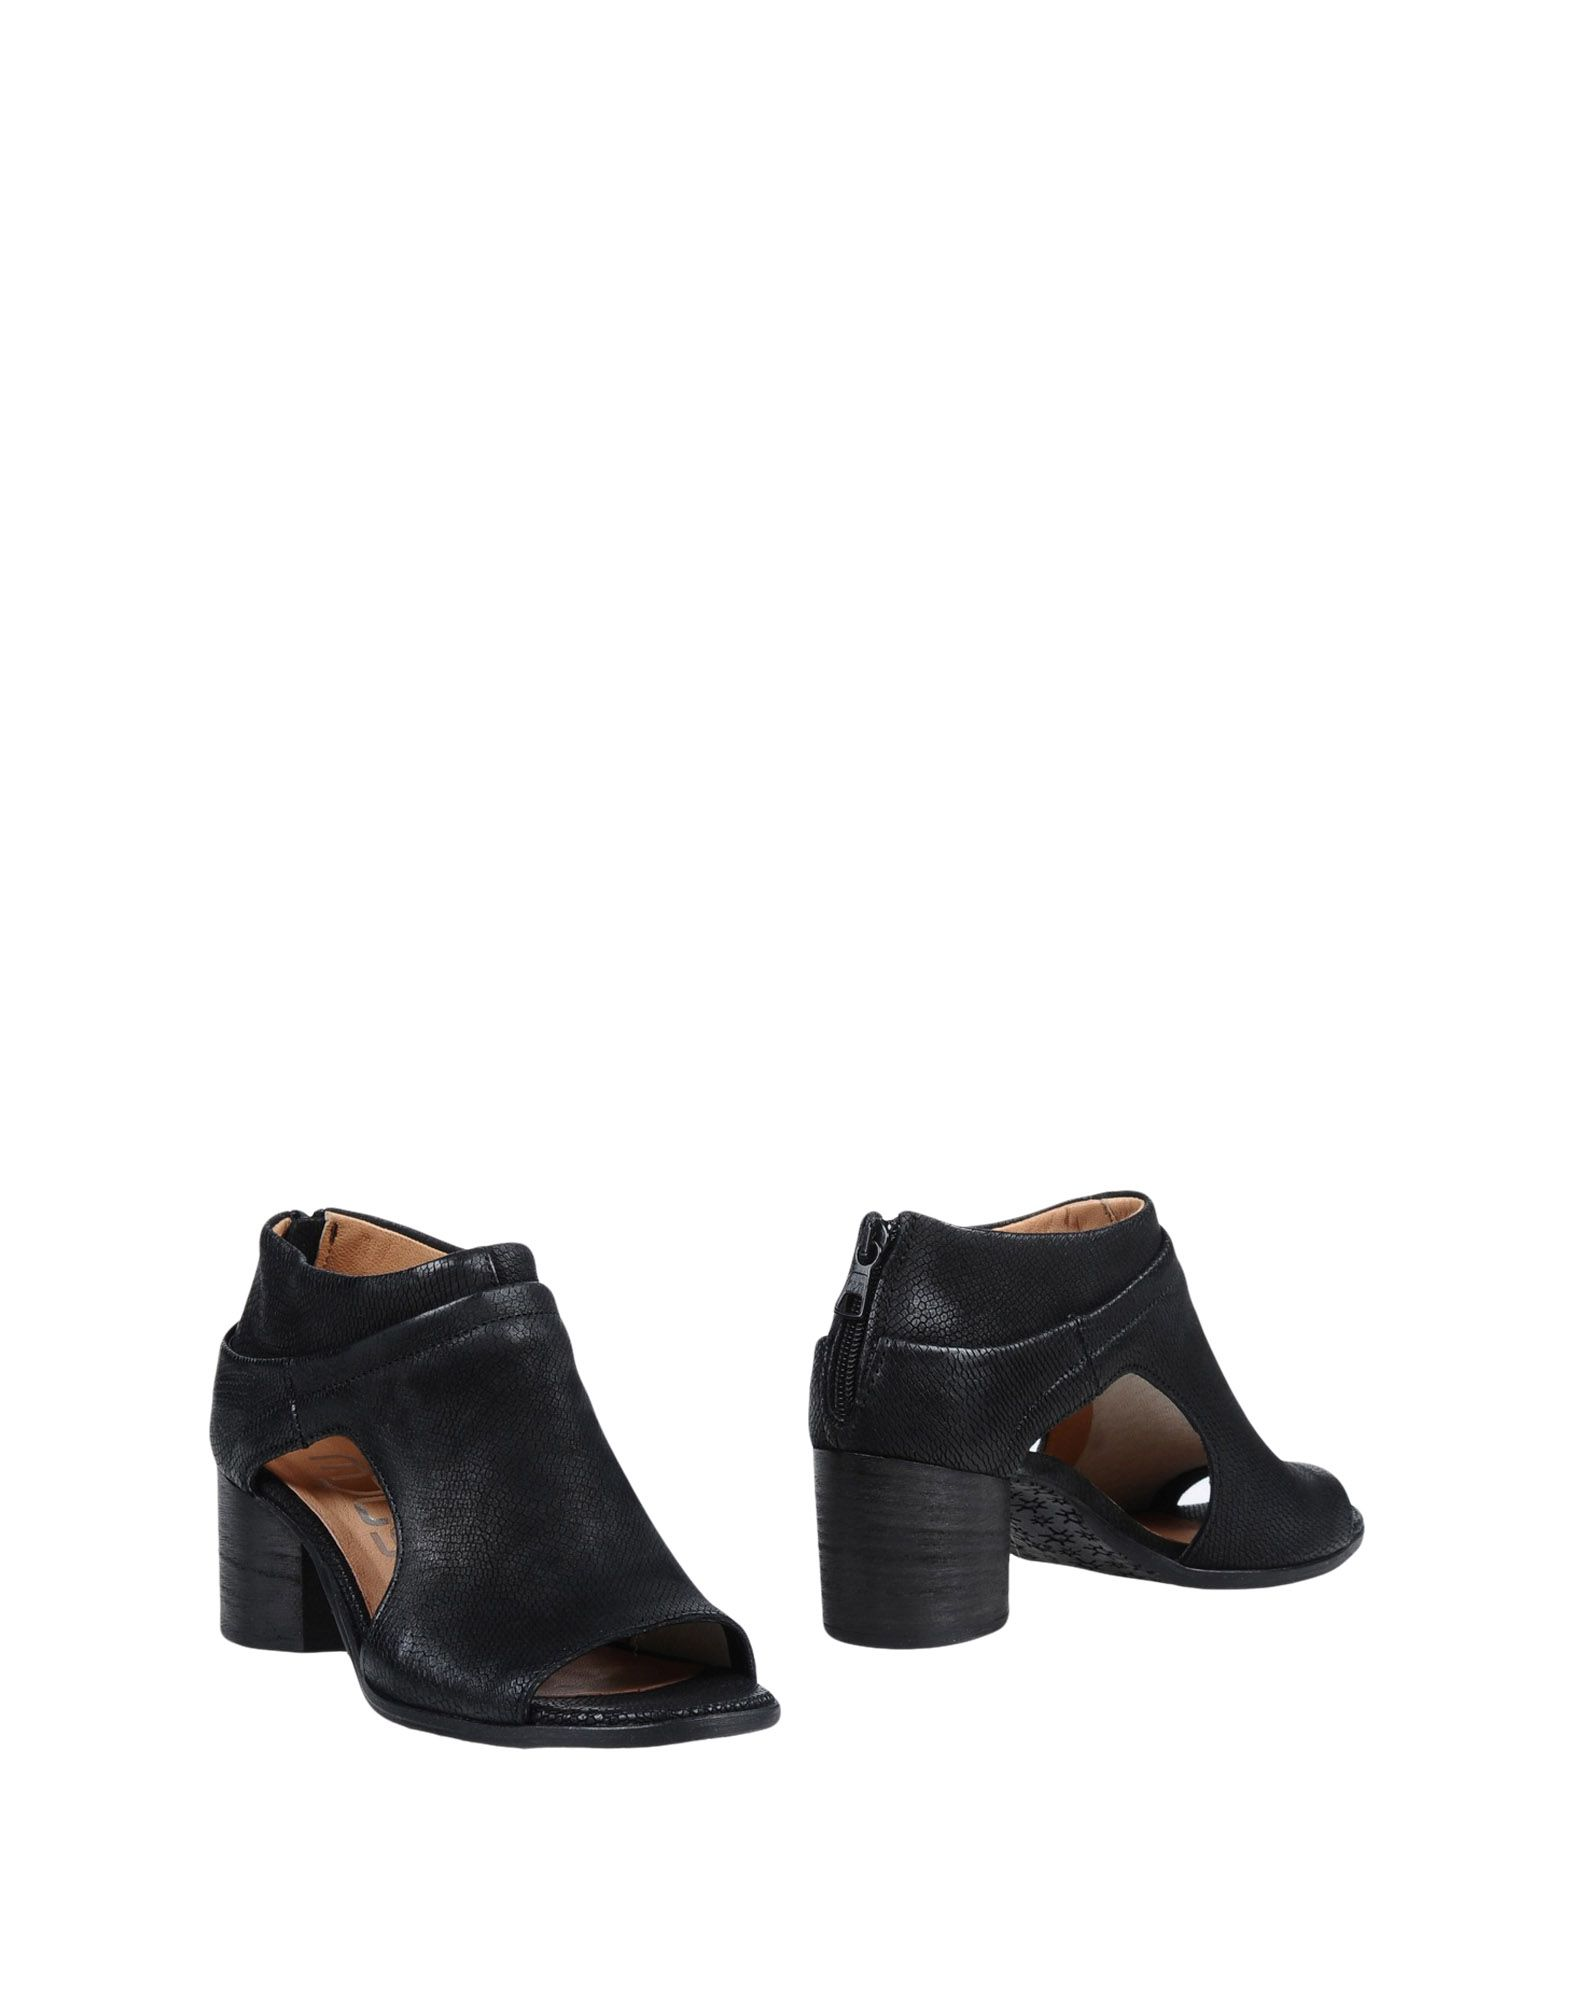 Bottine Mjus Femme - Bottines Mjus sur